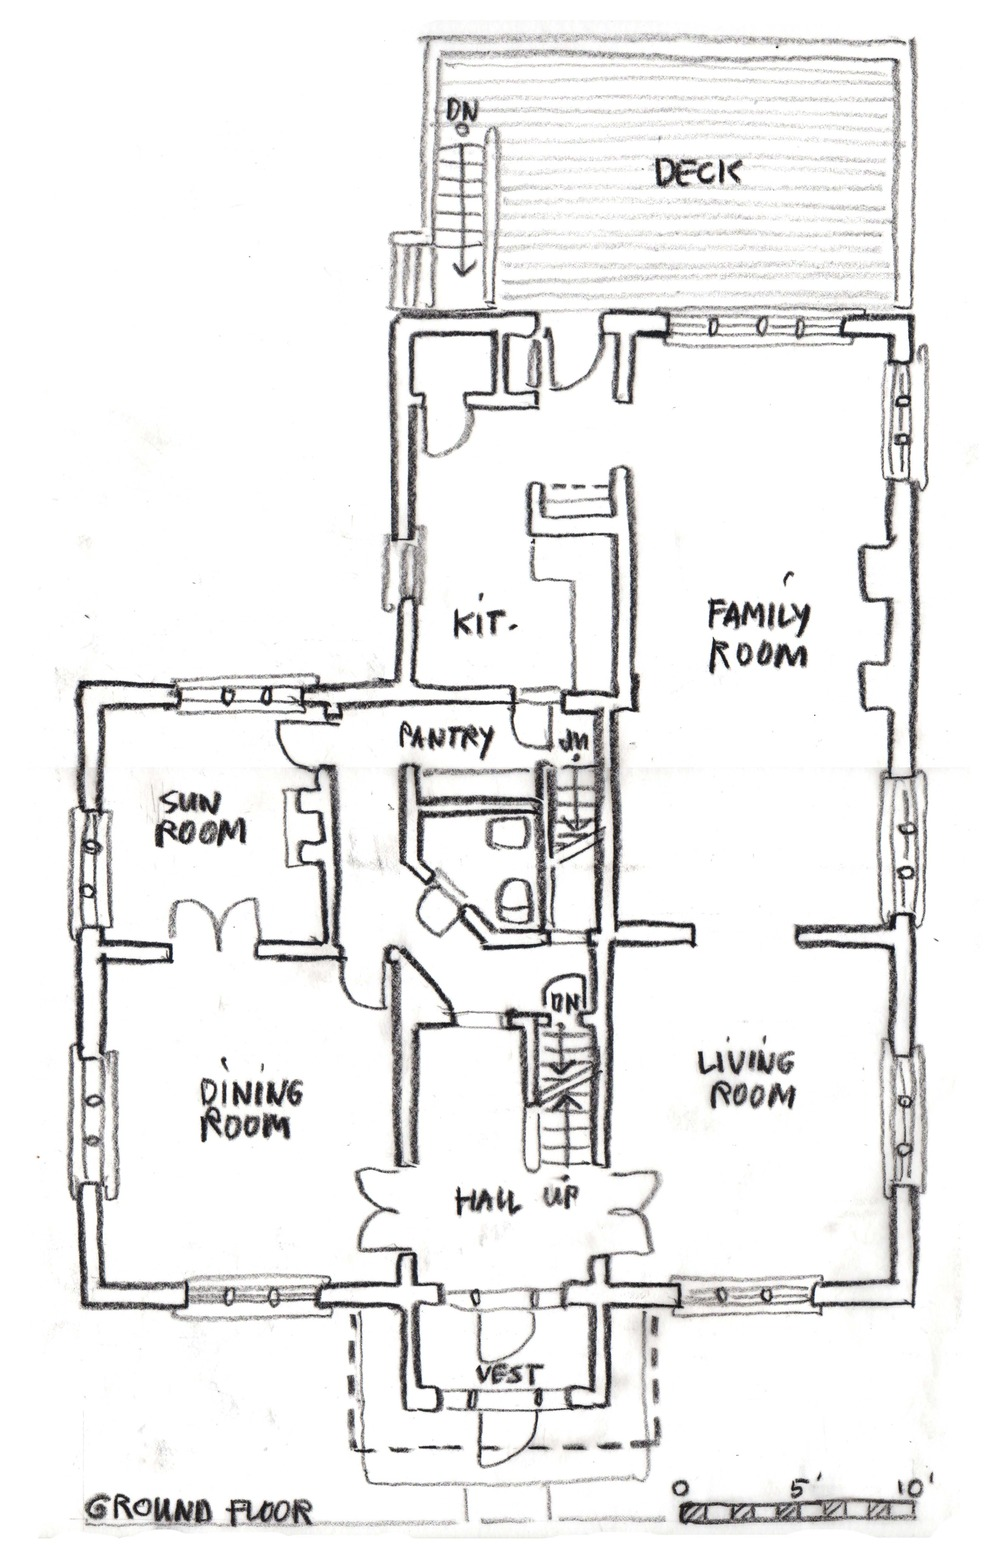 70 Weybourne TP Sketch All Floors_Page_3.jpg